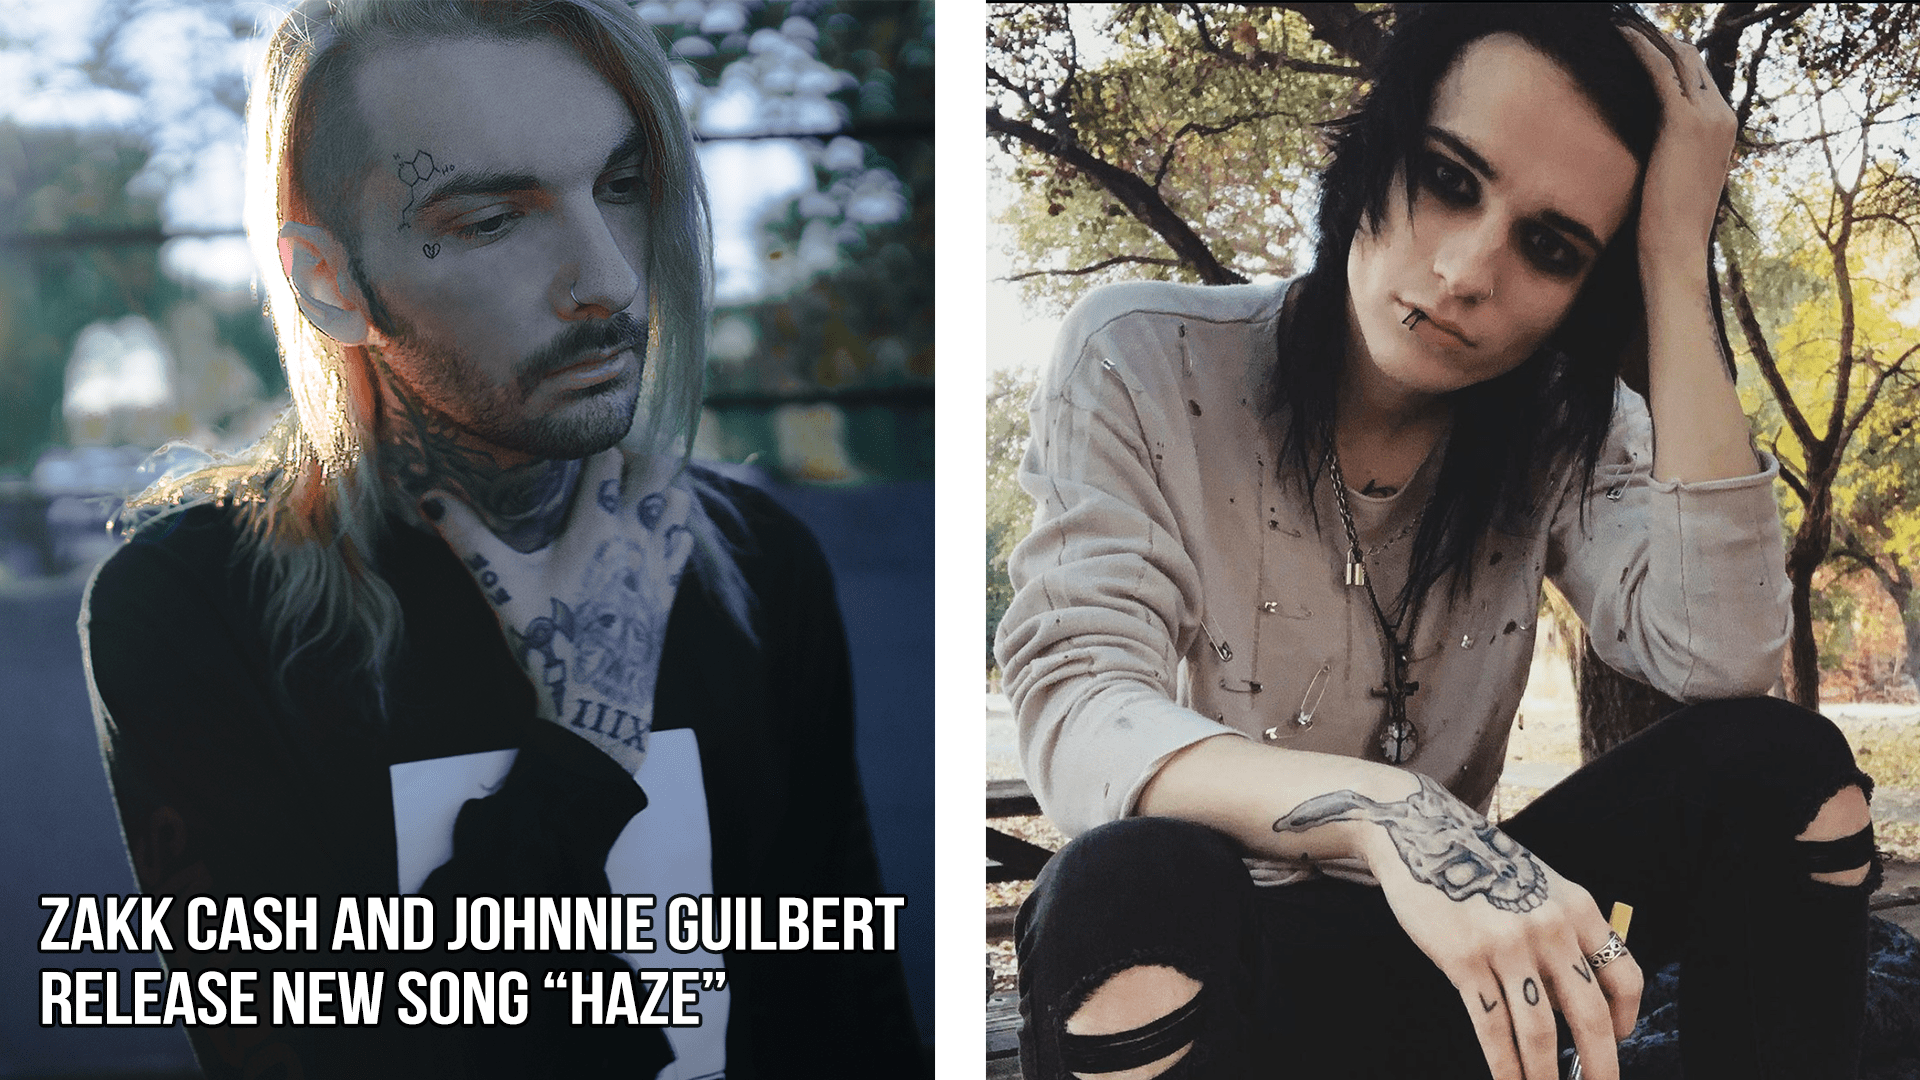 Zakk Cash opens up about a low point in his life with new single 'Haze' which features Johnnie Guilbert